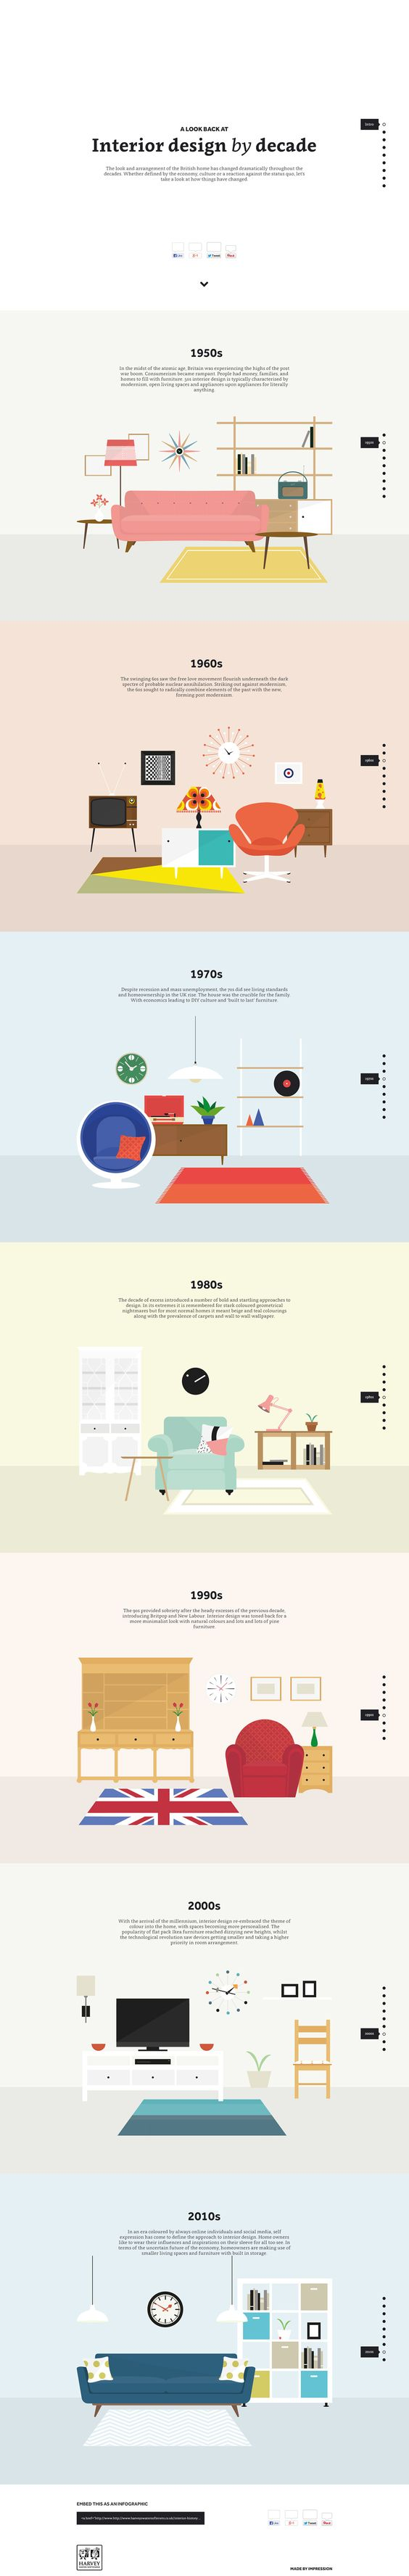 how many years is interior design - Interior design, One page website and Interiors on Pinterest